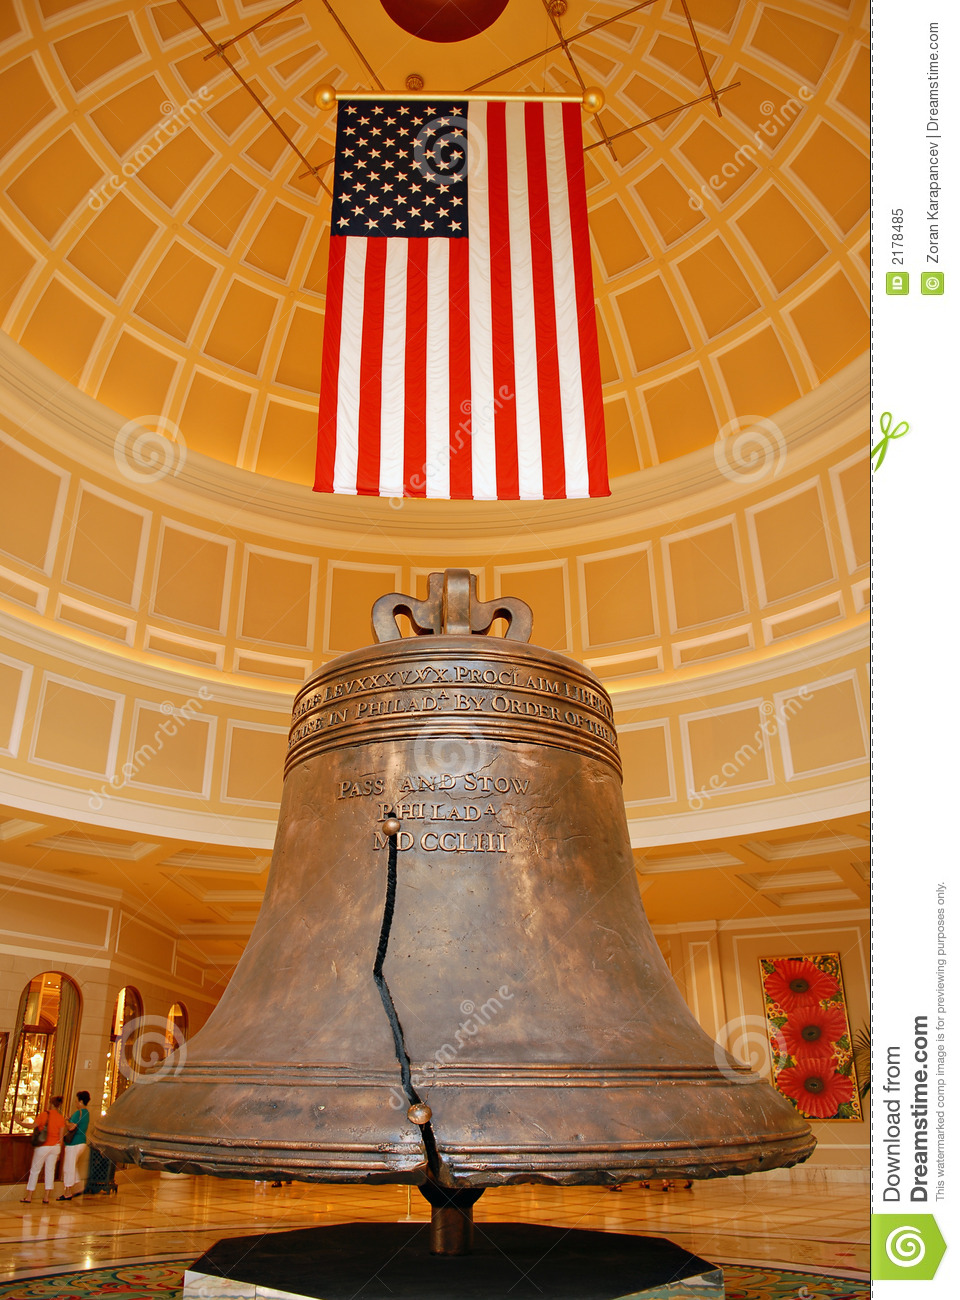 American flag and bell